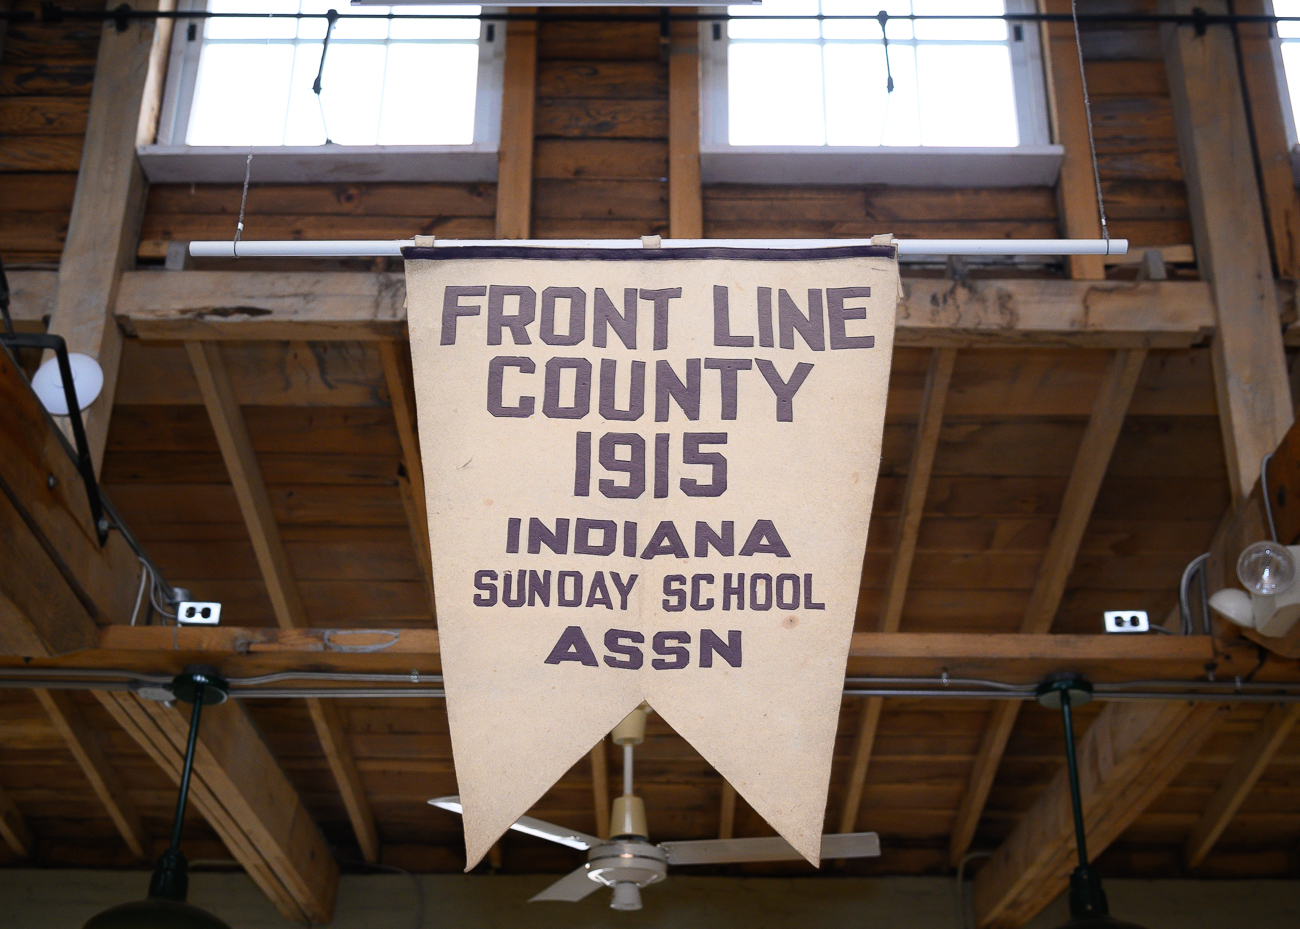 A banner that hangs from the clerestory in the Siekman Gallery / Image: Phil Armstrong, Cincinnati Refined // Published: 1.7.20